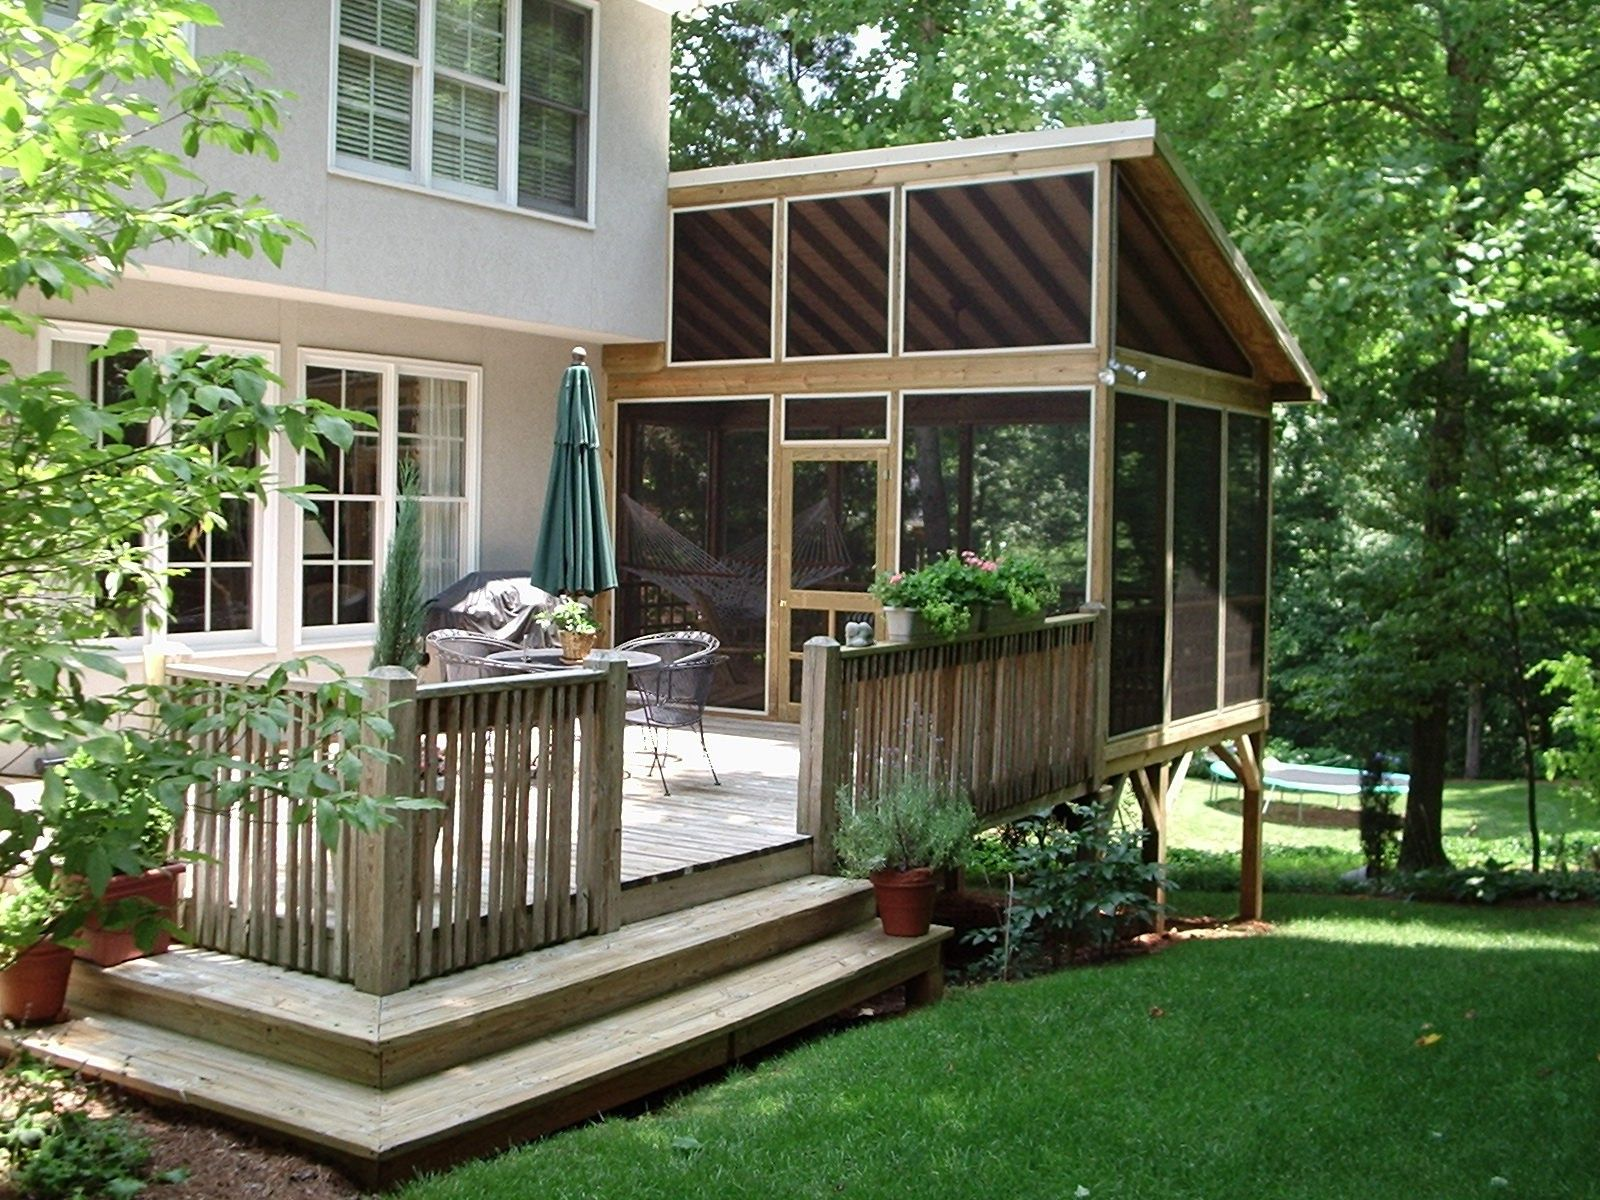 Nice backyard deck ideas to increase your house selling for Backyard decks